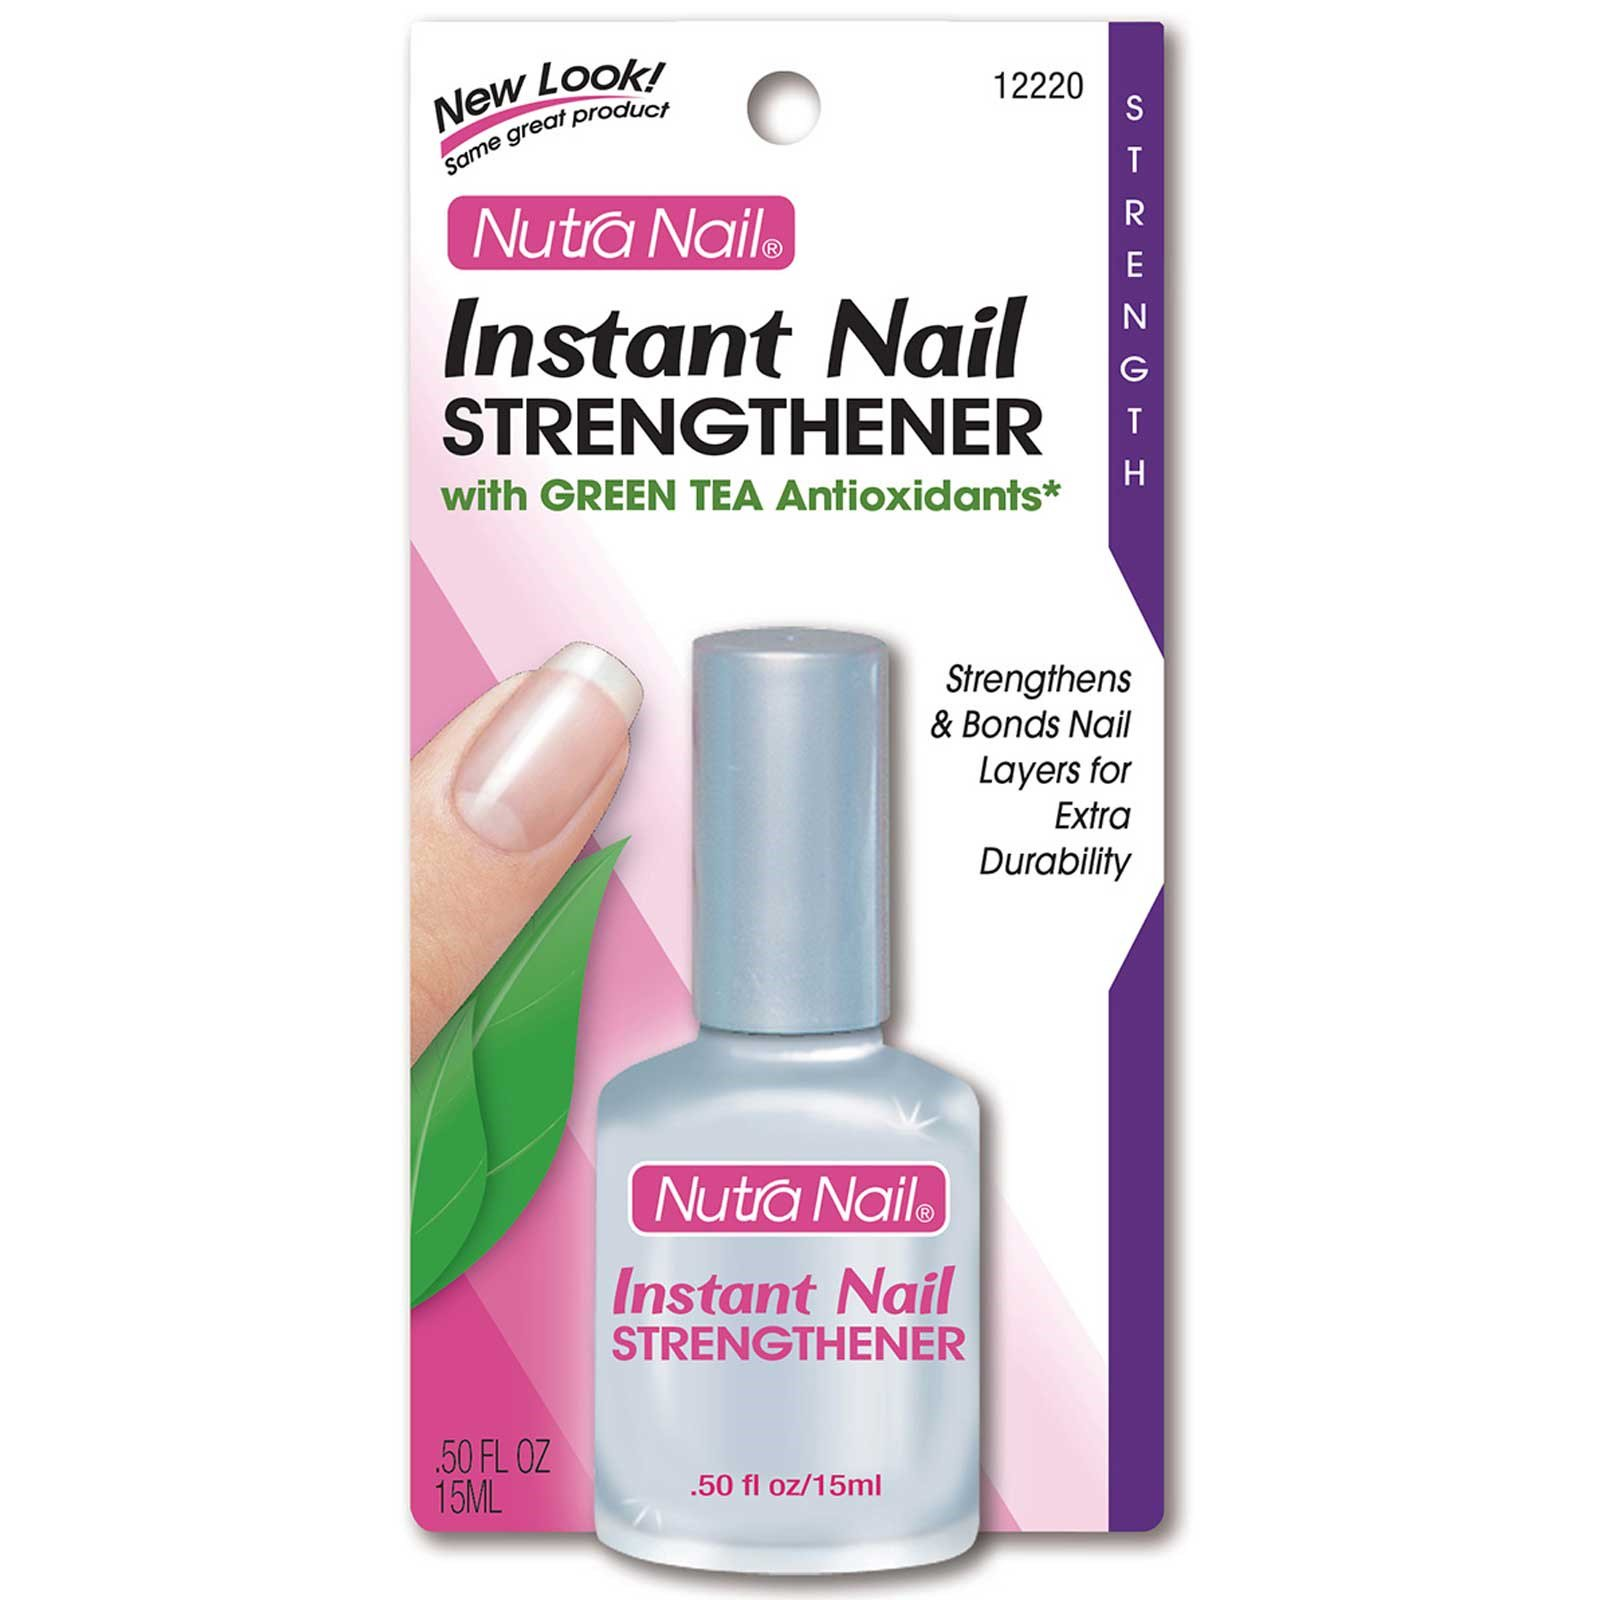 Nutra nail instant nail strengthener 50 fl oz 15 ml iherb nutra nail instant nail strengthener 50 fl oz 15 ml solutioingenieria Image collections